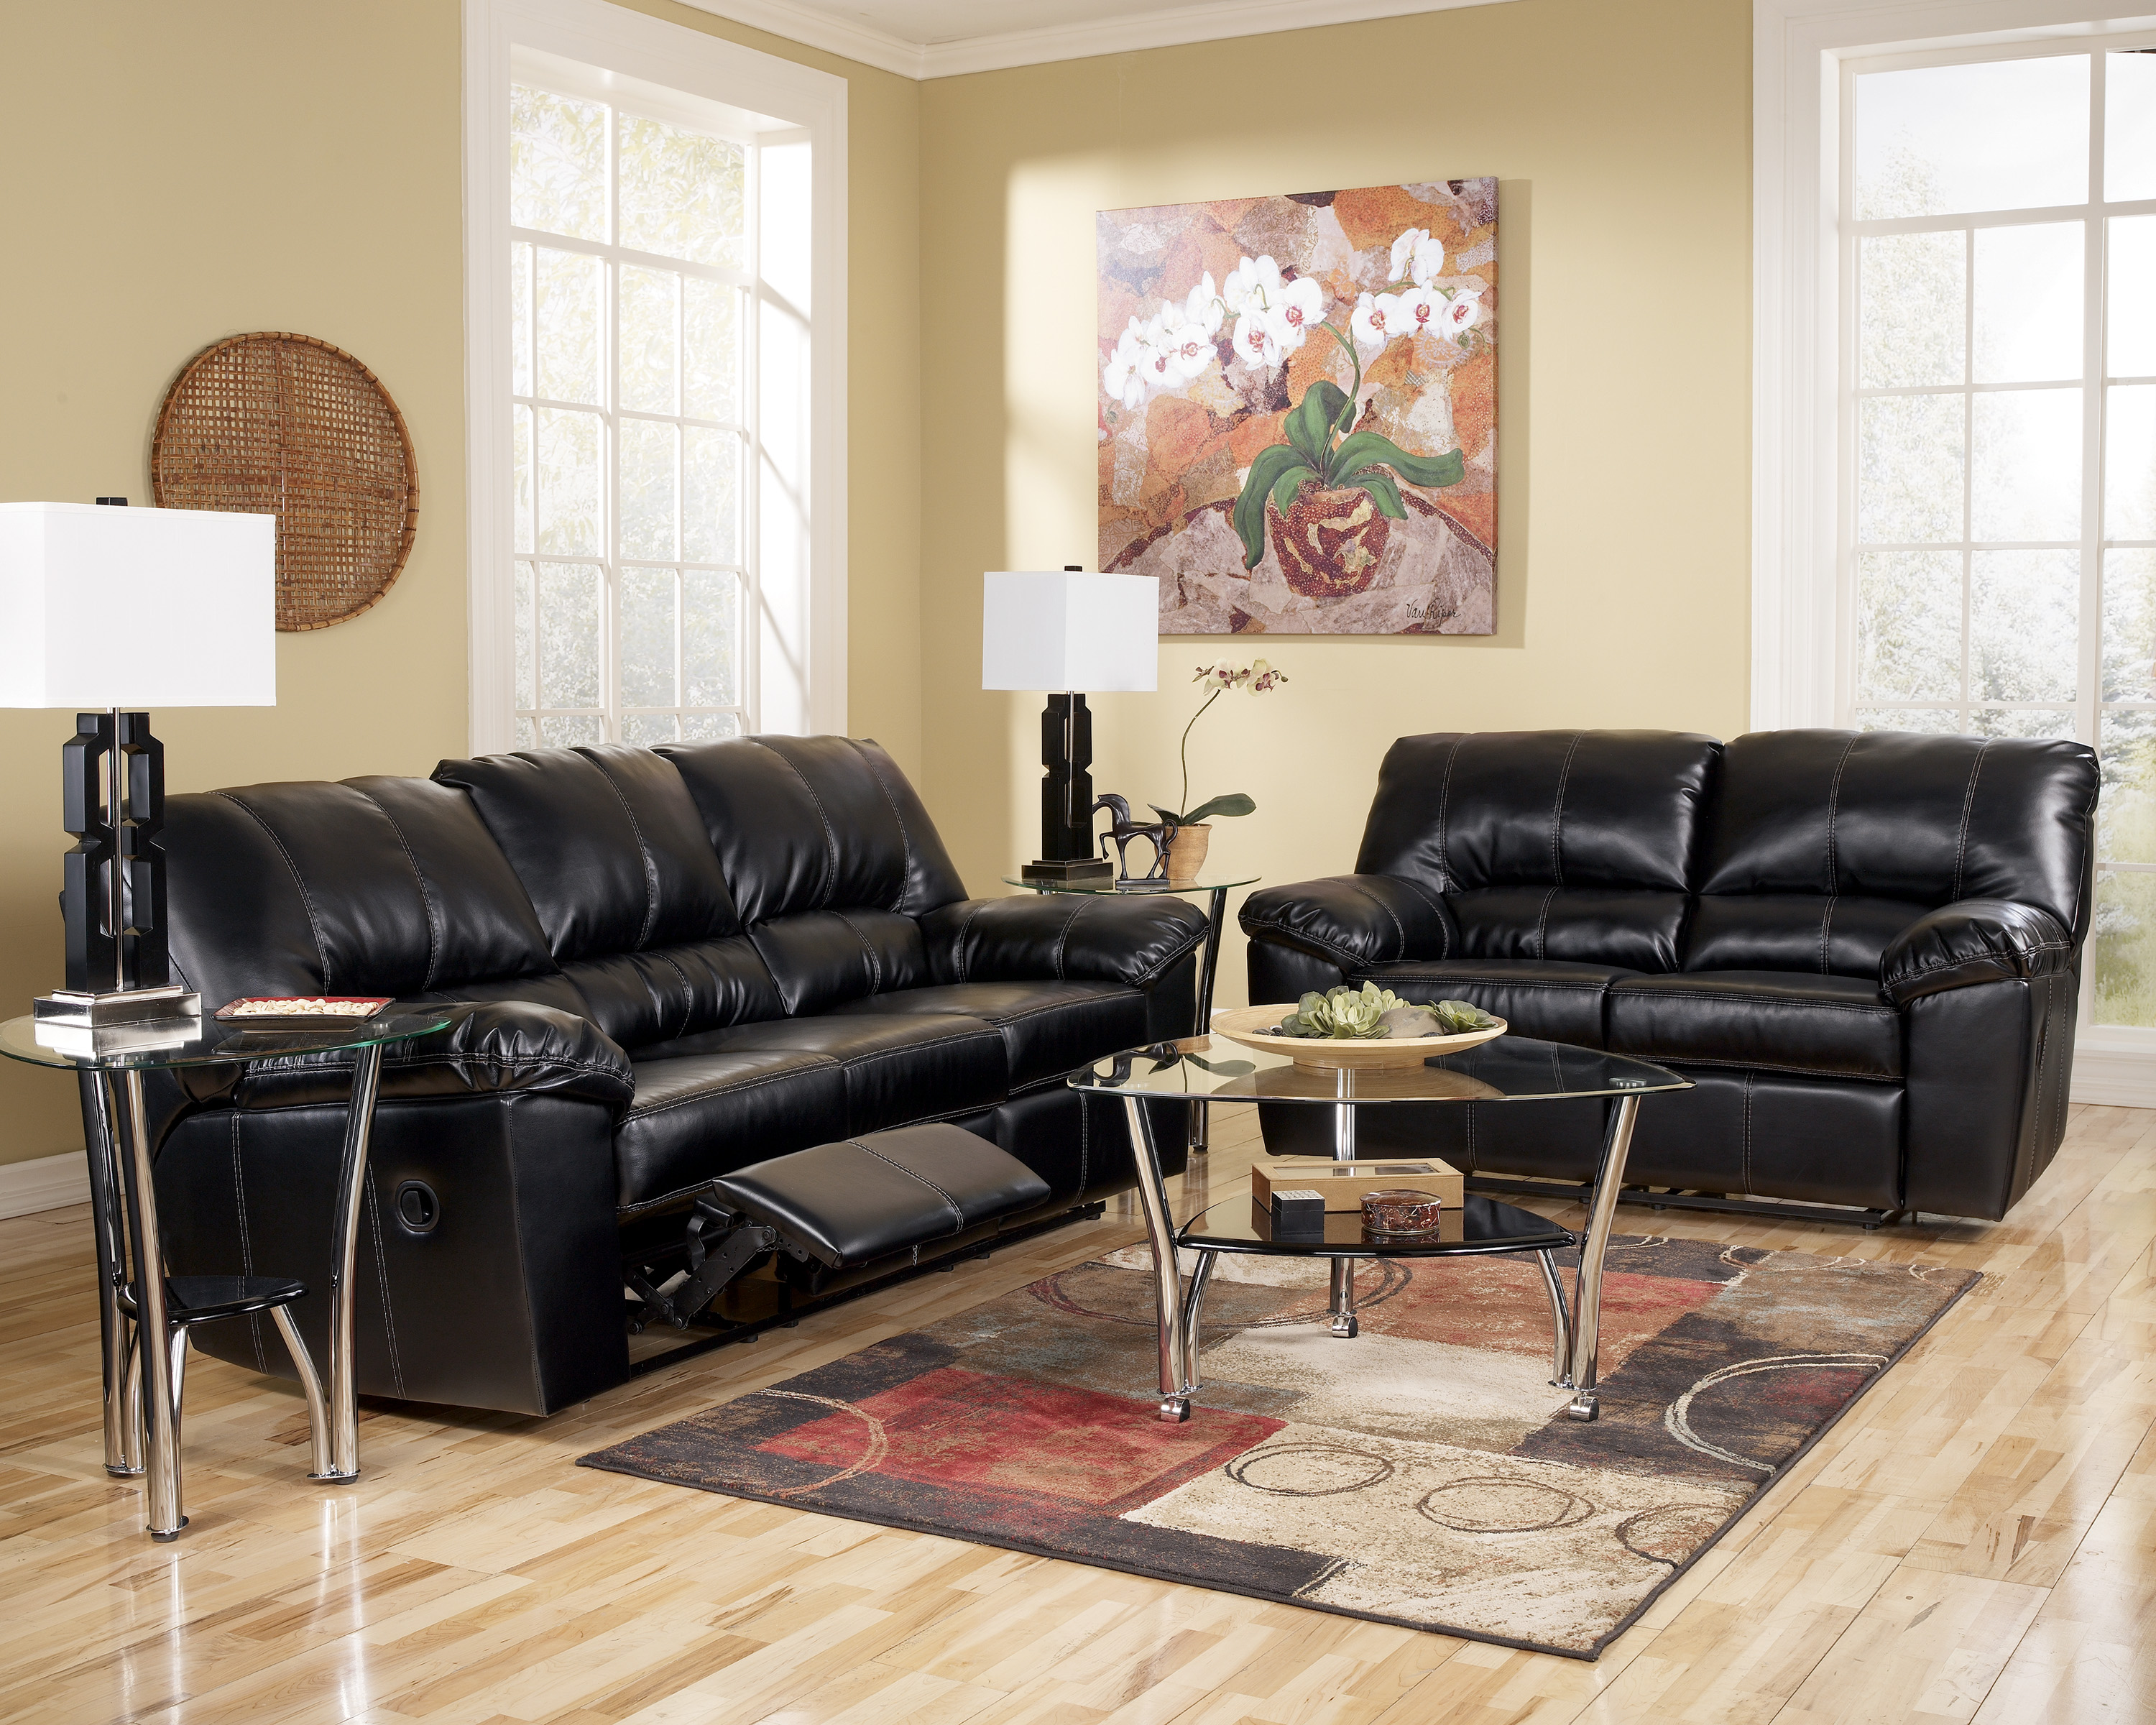 Comfortable reclining sofa for resting tired body Reclining living room furniture